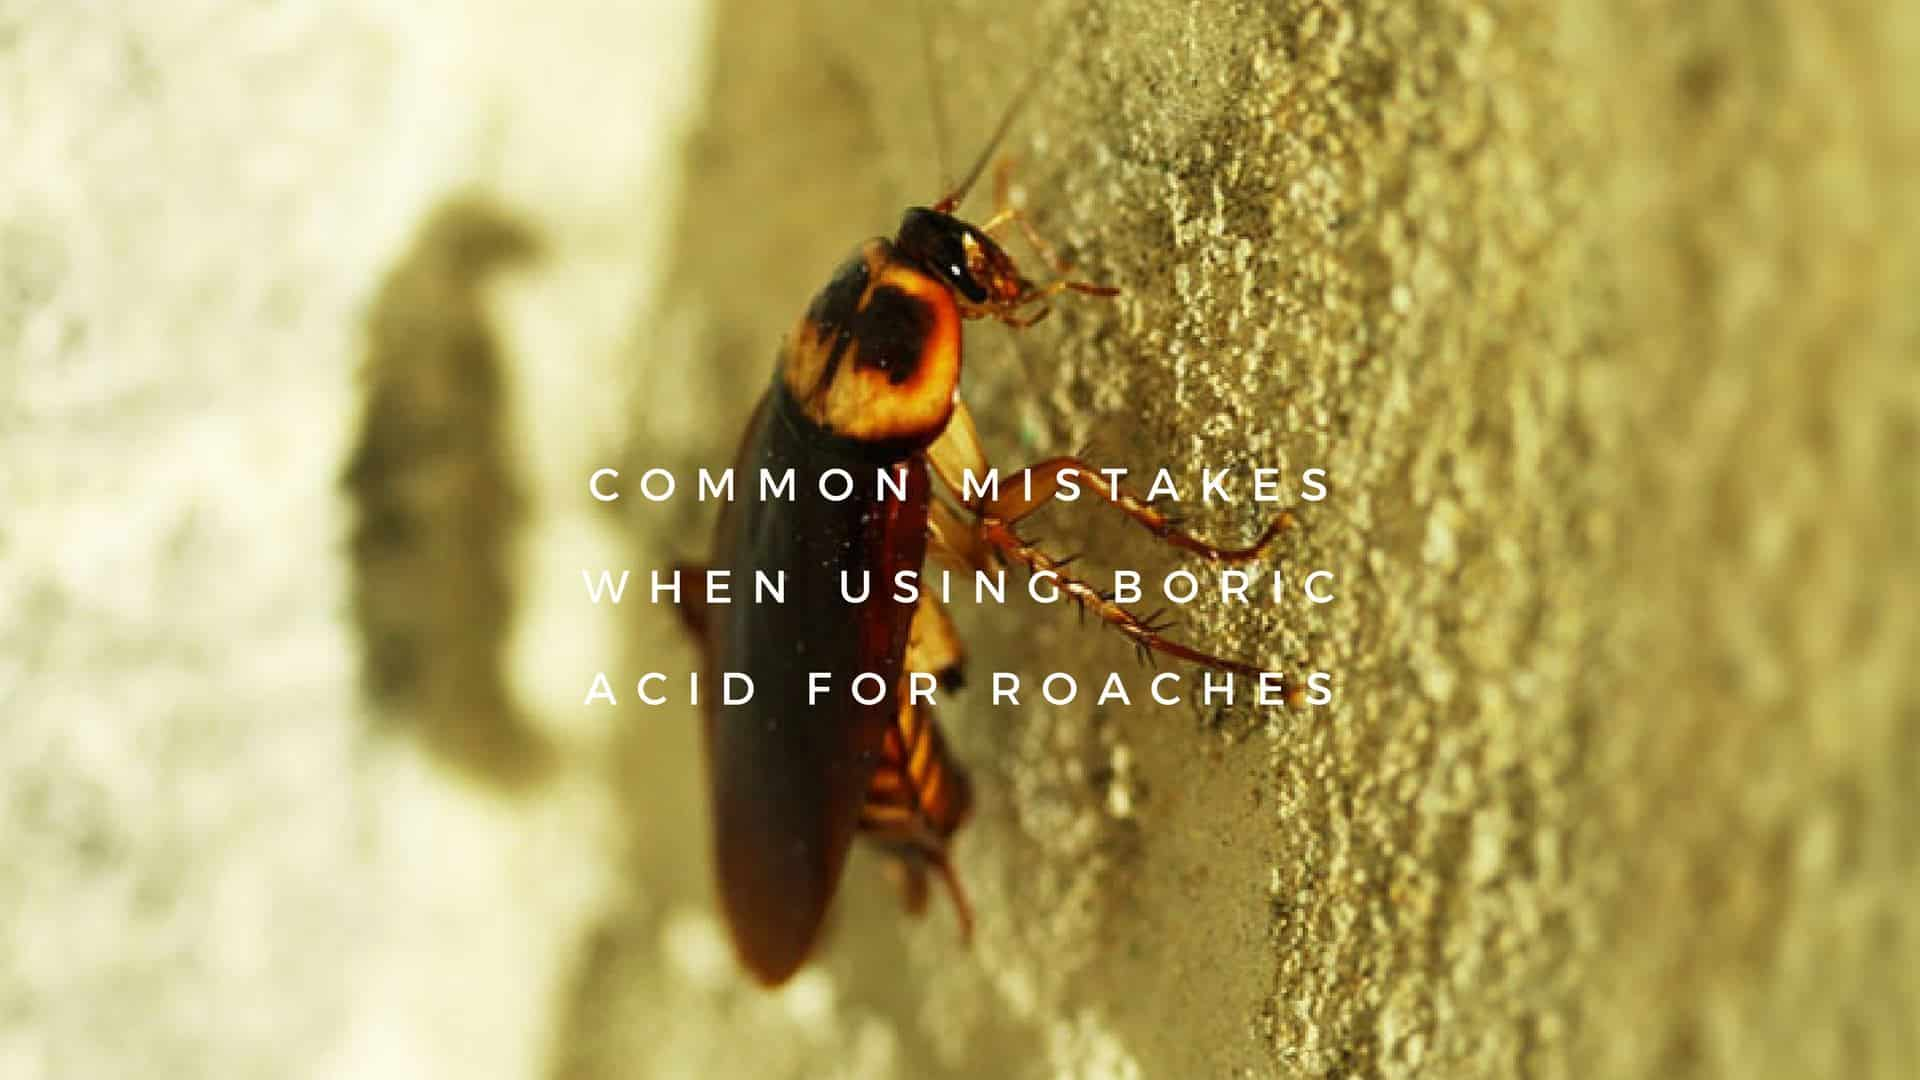 Using Boric Acid for Roaches